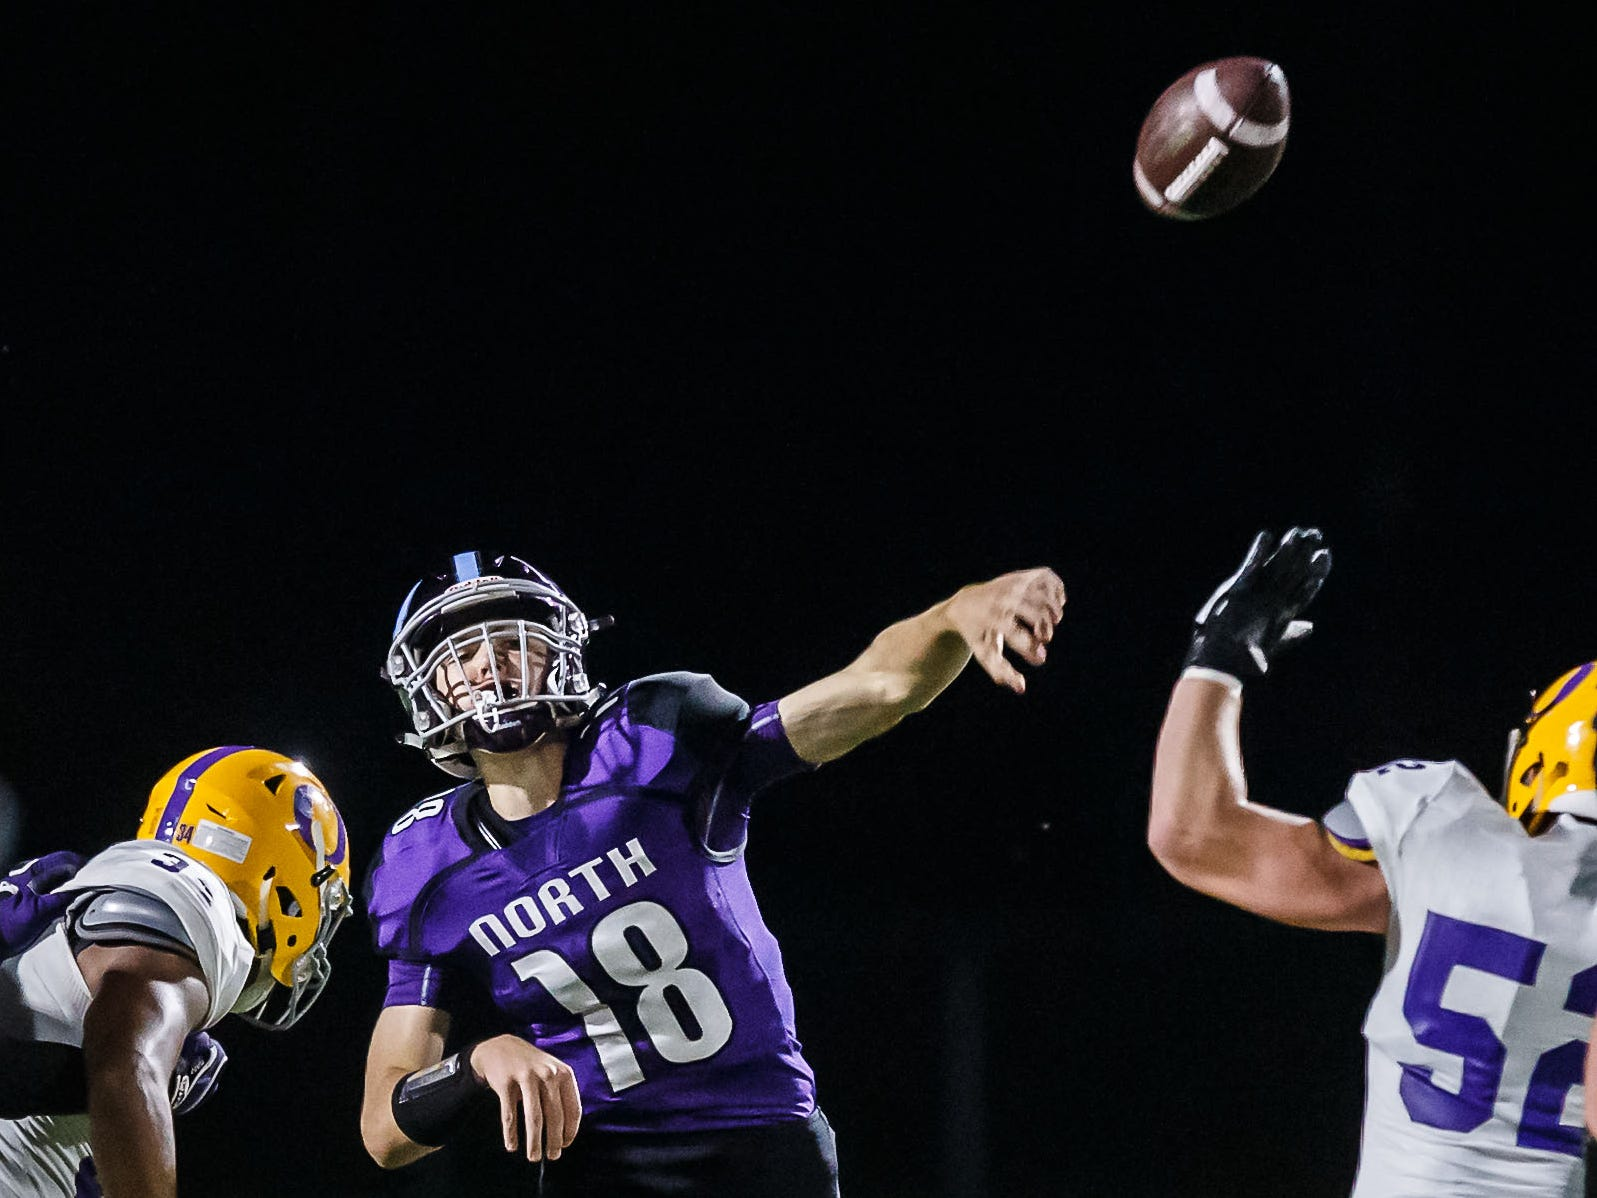 Waukesha North quarterback Johnny Kelliher (18) delivers a bomb during the game at home against Oconomowoc on Friday, Sept. 14, 2018.